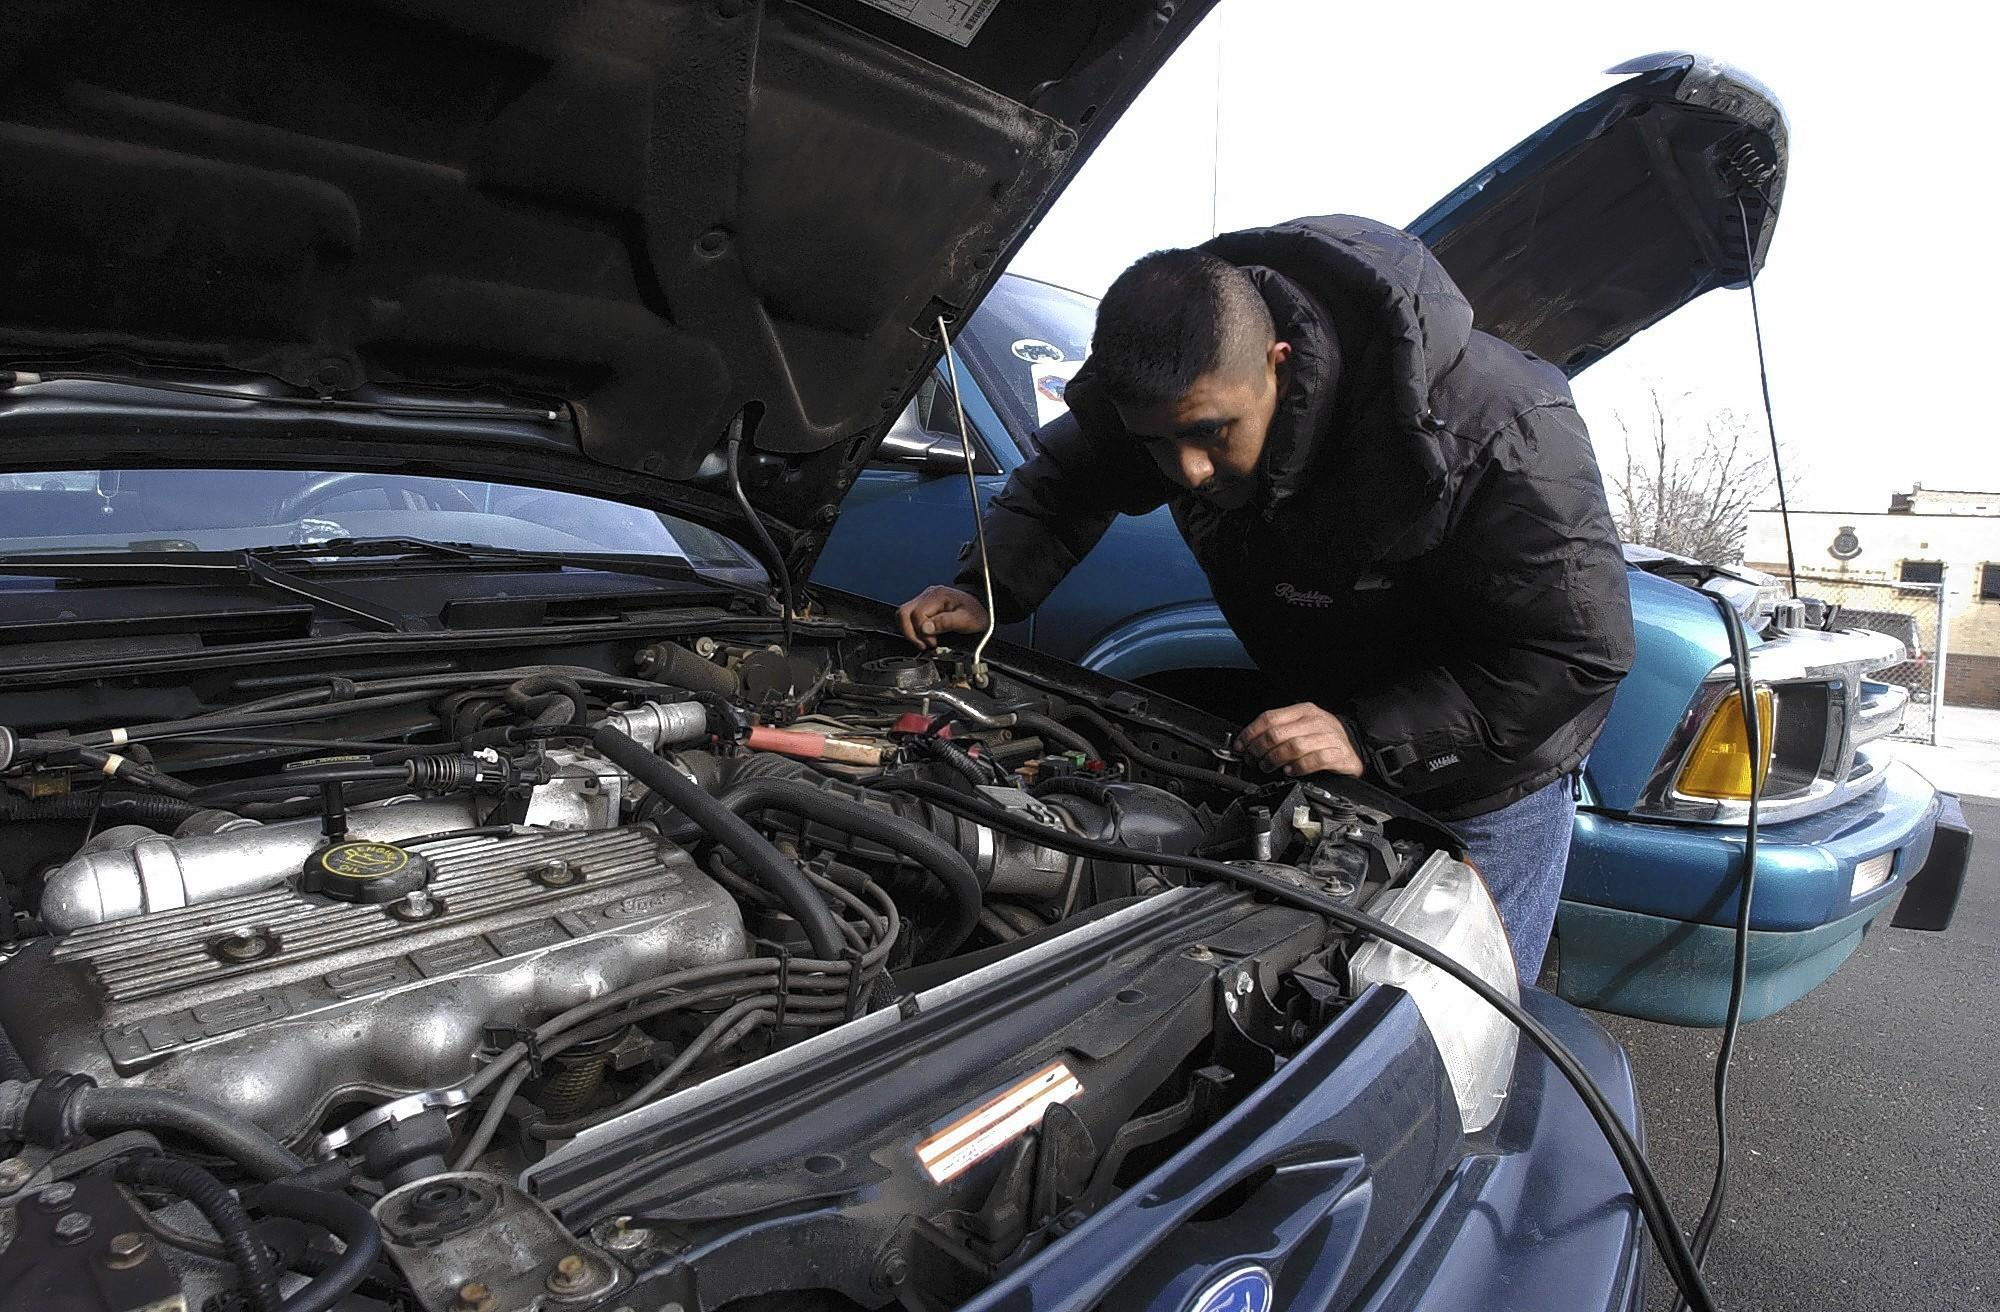 Dominguez, working in cold temperatures, attaches jumper cables to the batteries of his SUV at right and the car of a friend at left but has no luck getting the car started.